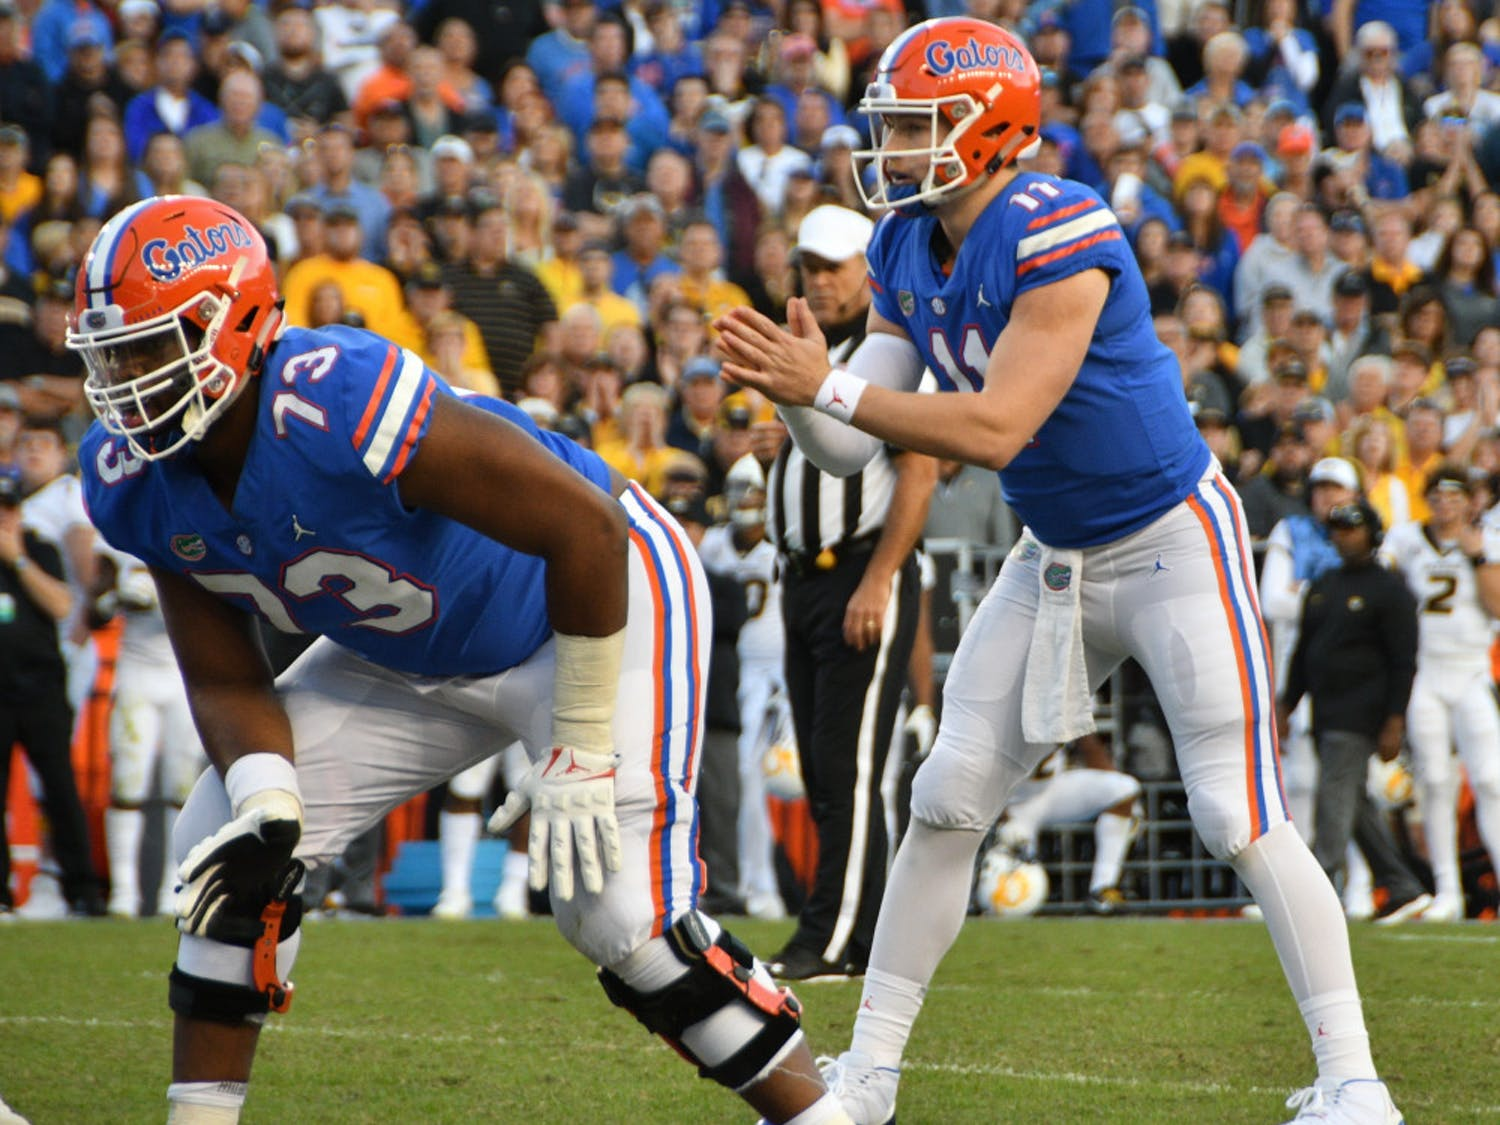 Quarterback Kyle Trask took over for Feleipe Franks with five minutes to go in the third quarter in Saturday's 38-17 loss to Missouri. He led a scoring drive in his first series.